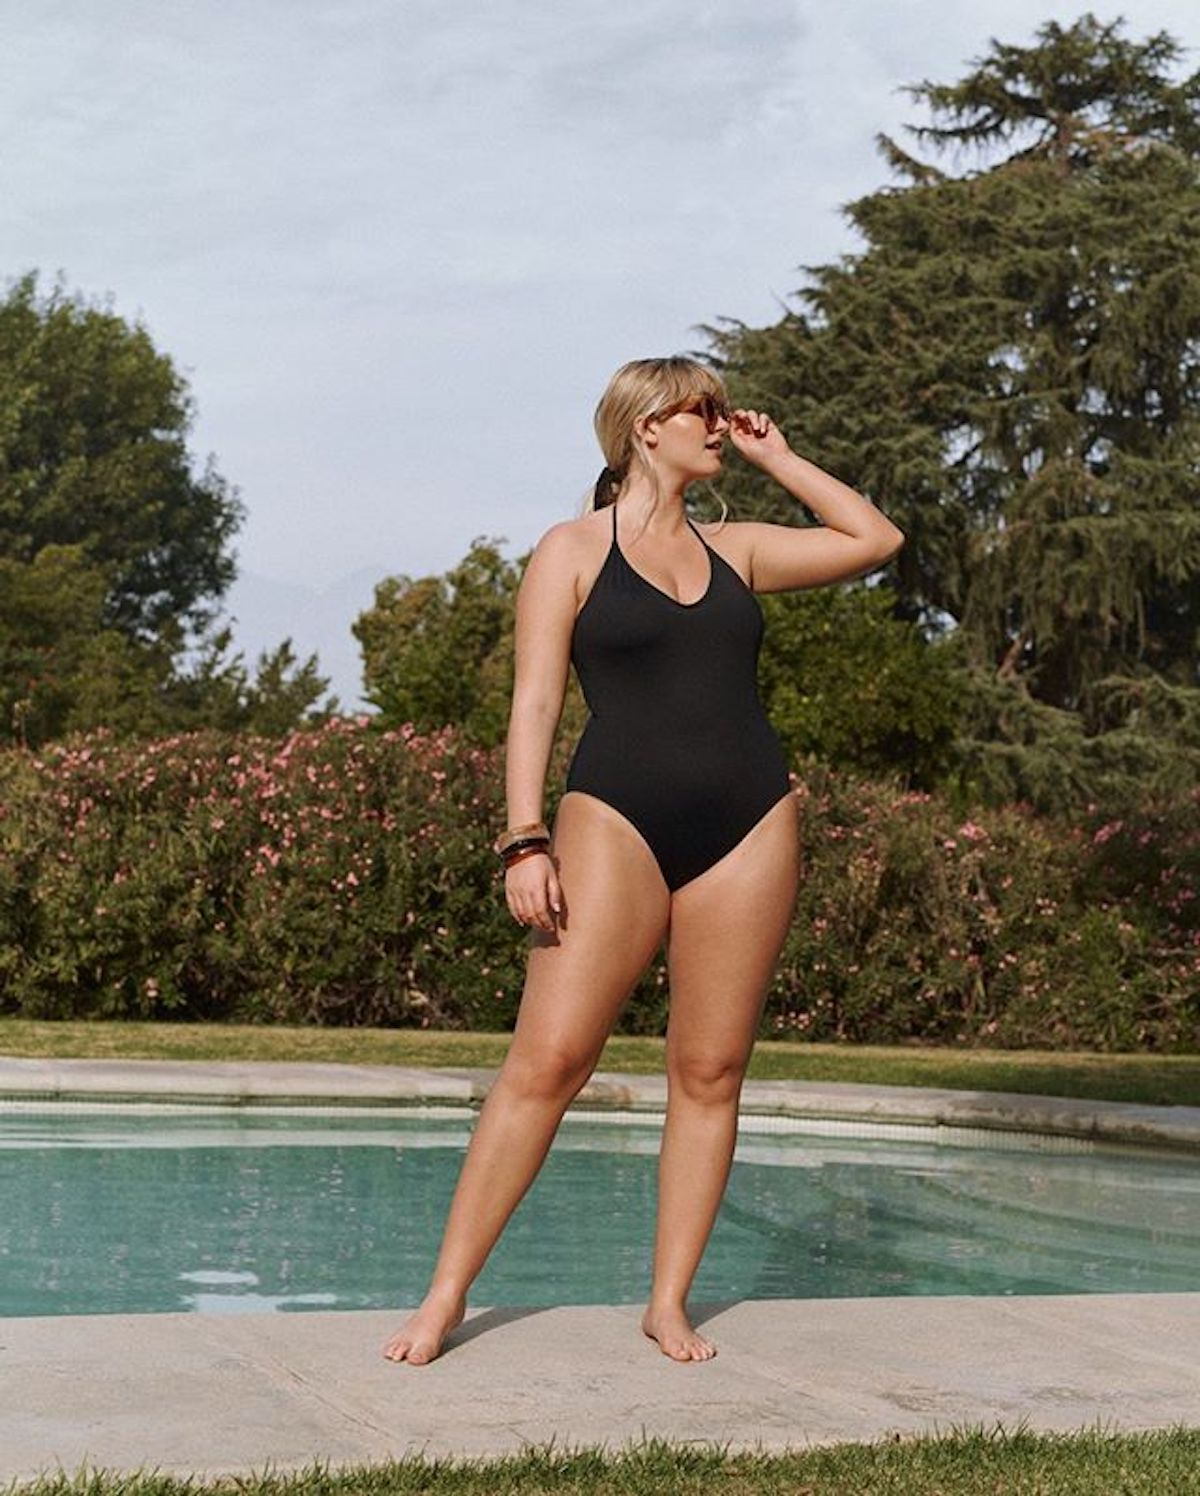 This Flattering One-Piece Is Nordstrom's Top-Rated Swimsuit by a Landslide